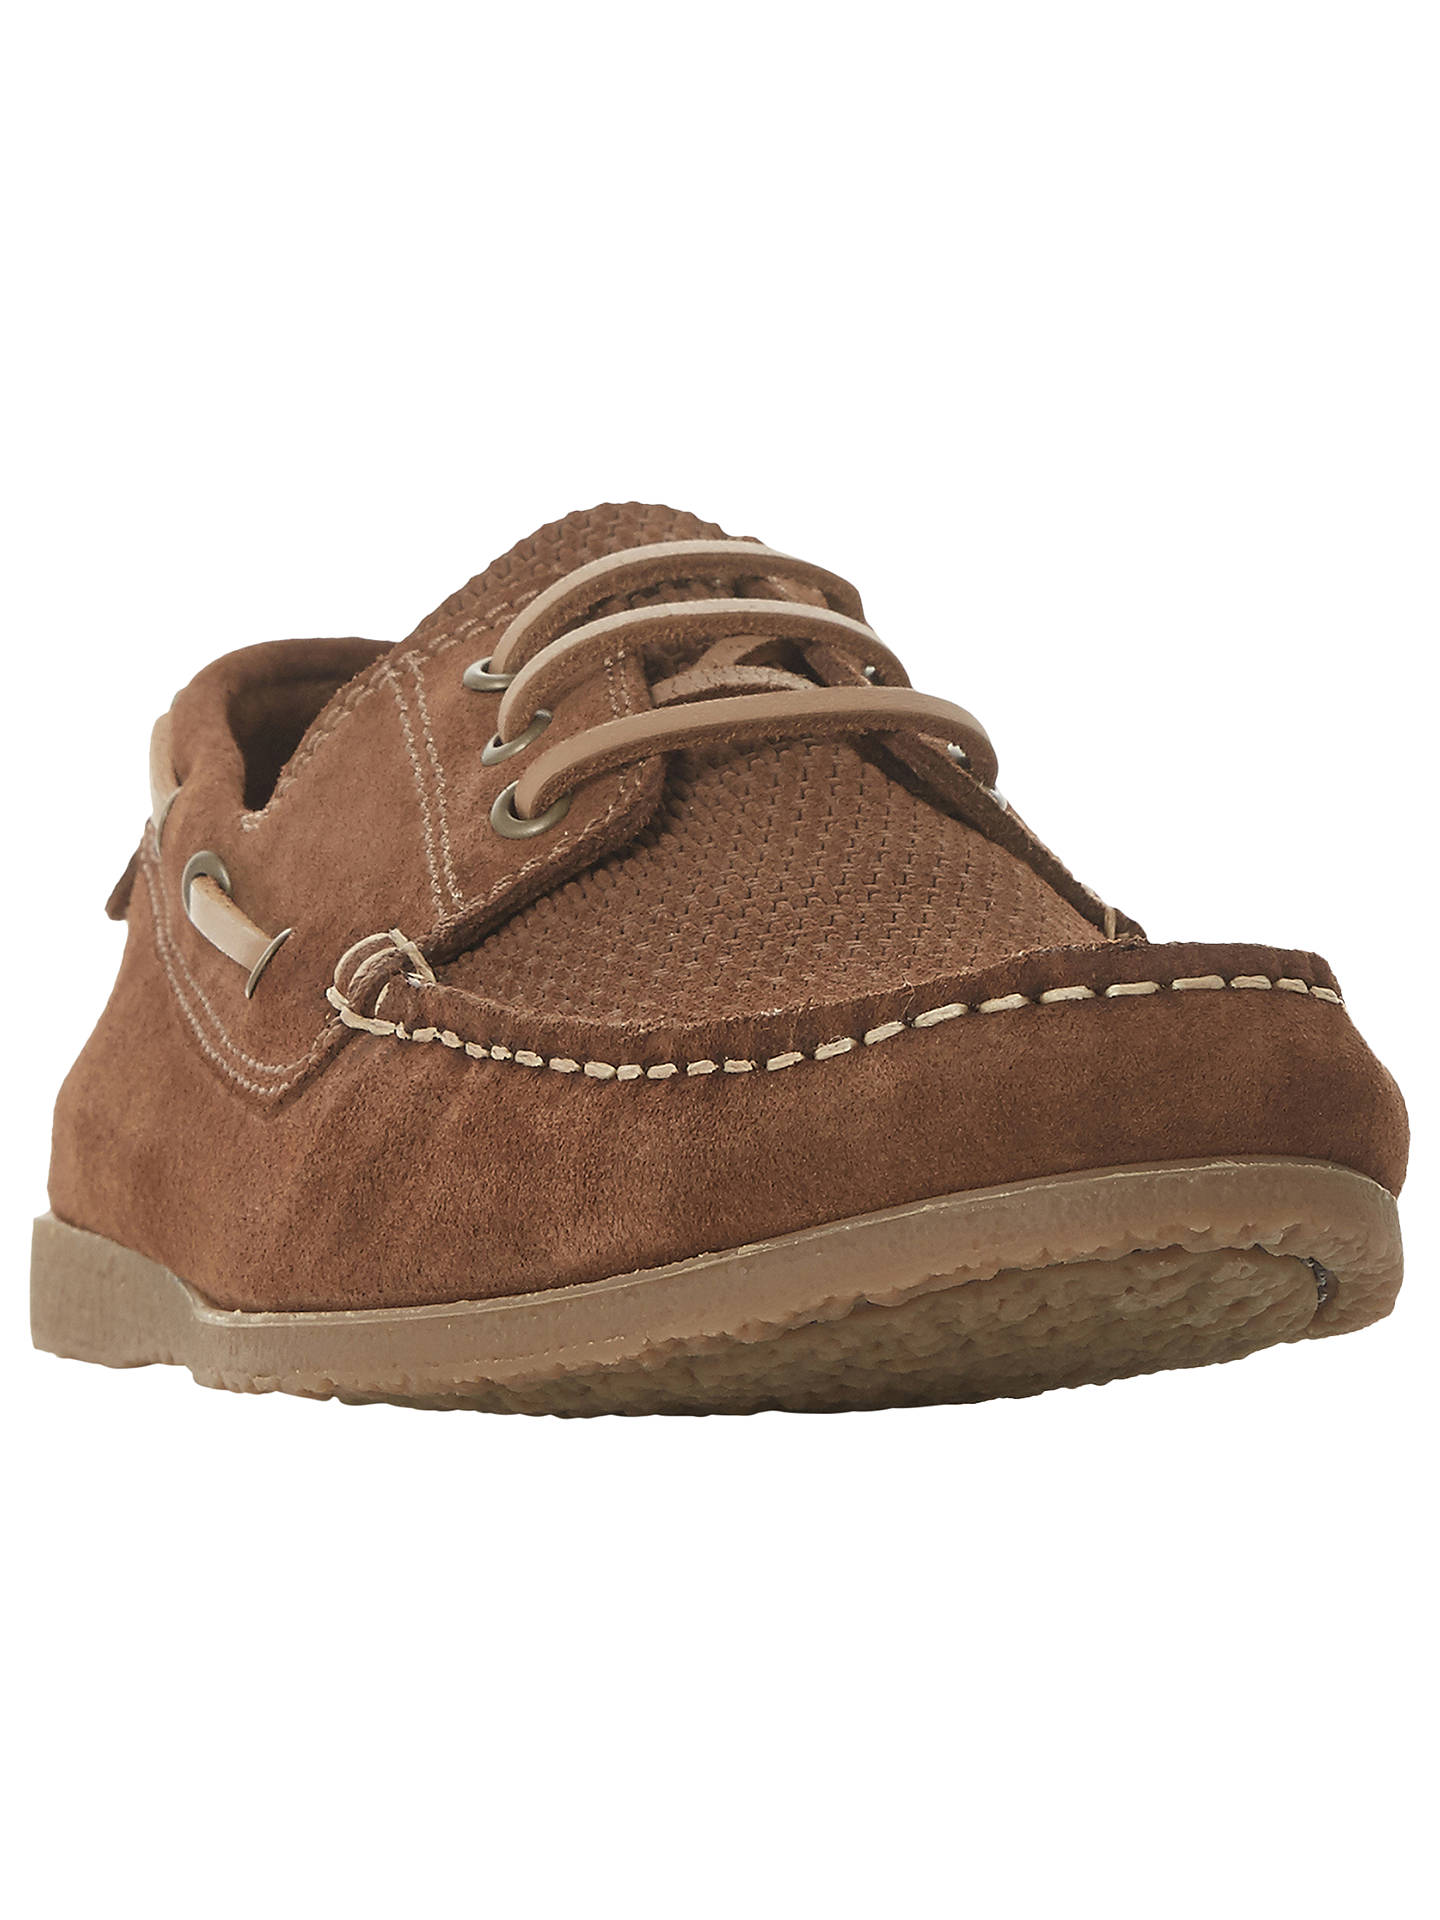 BuyBertie Battalion Classic Boat Shoes, Tan Suede, 7 Online at johnlewis.com